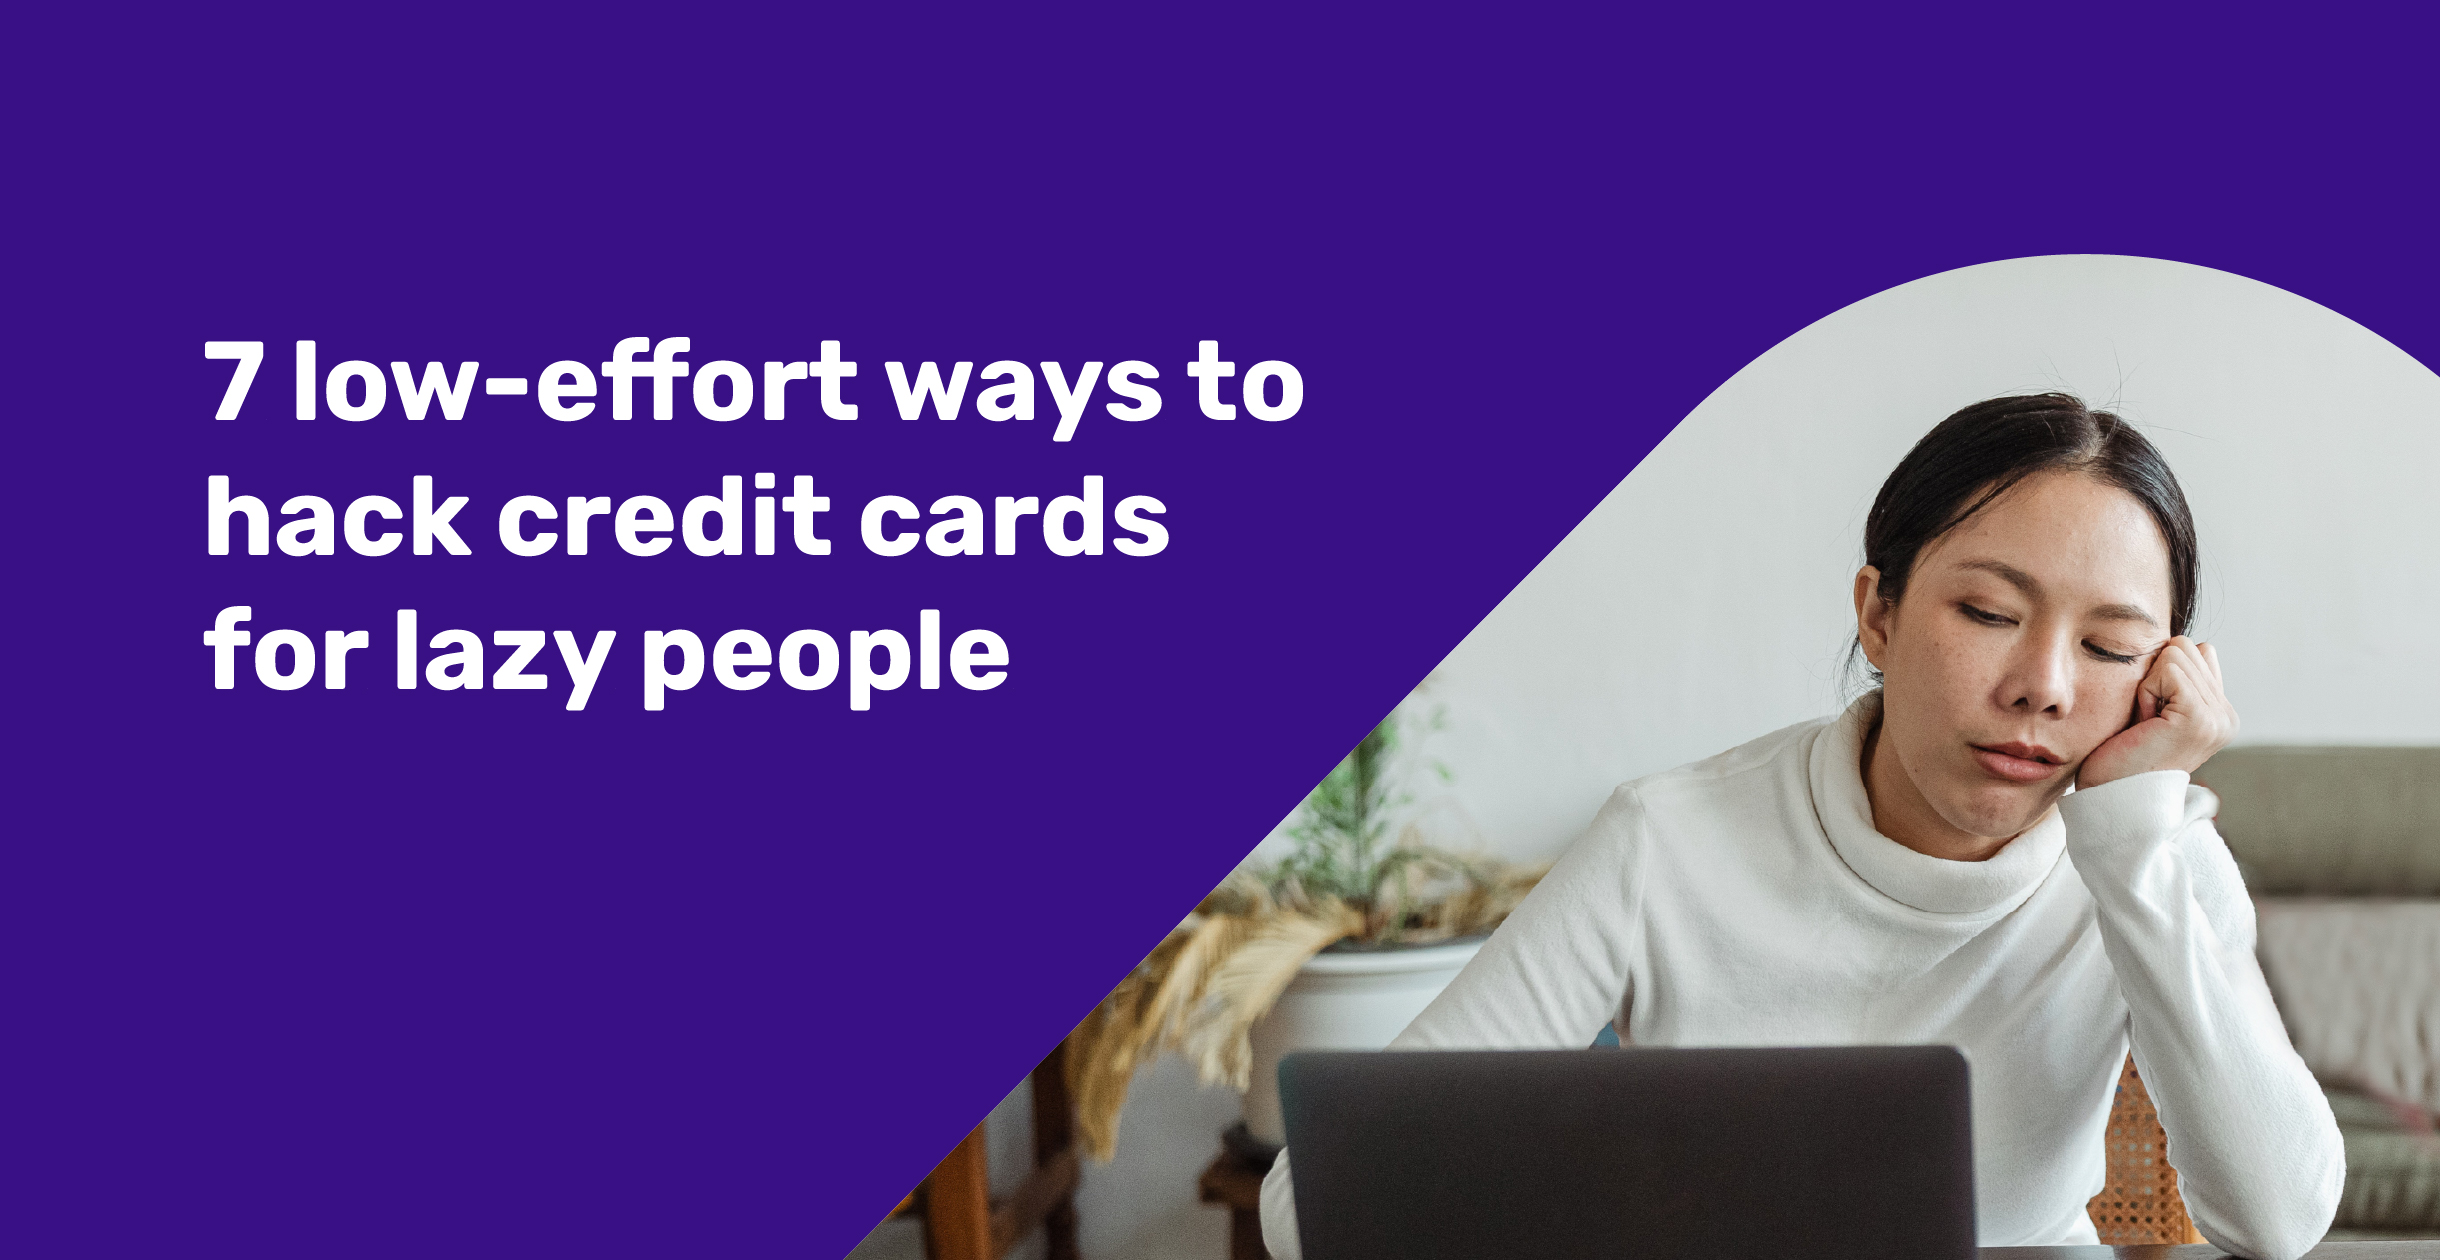 7 low-effort ways to hack credit cards for lazy people